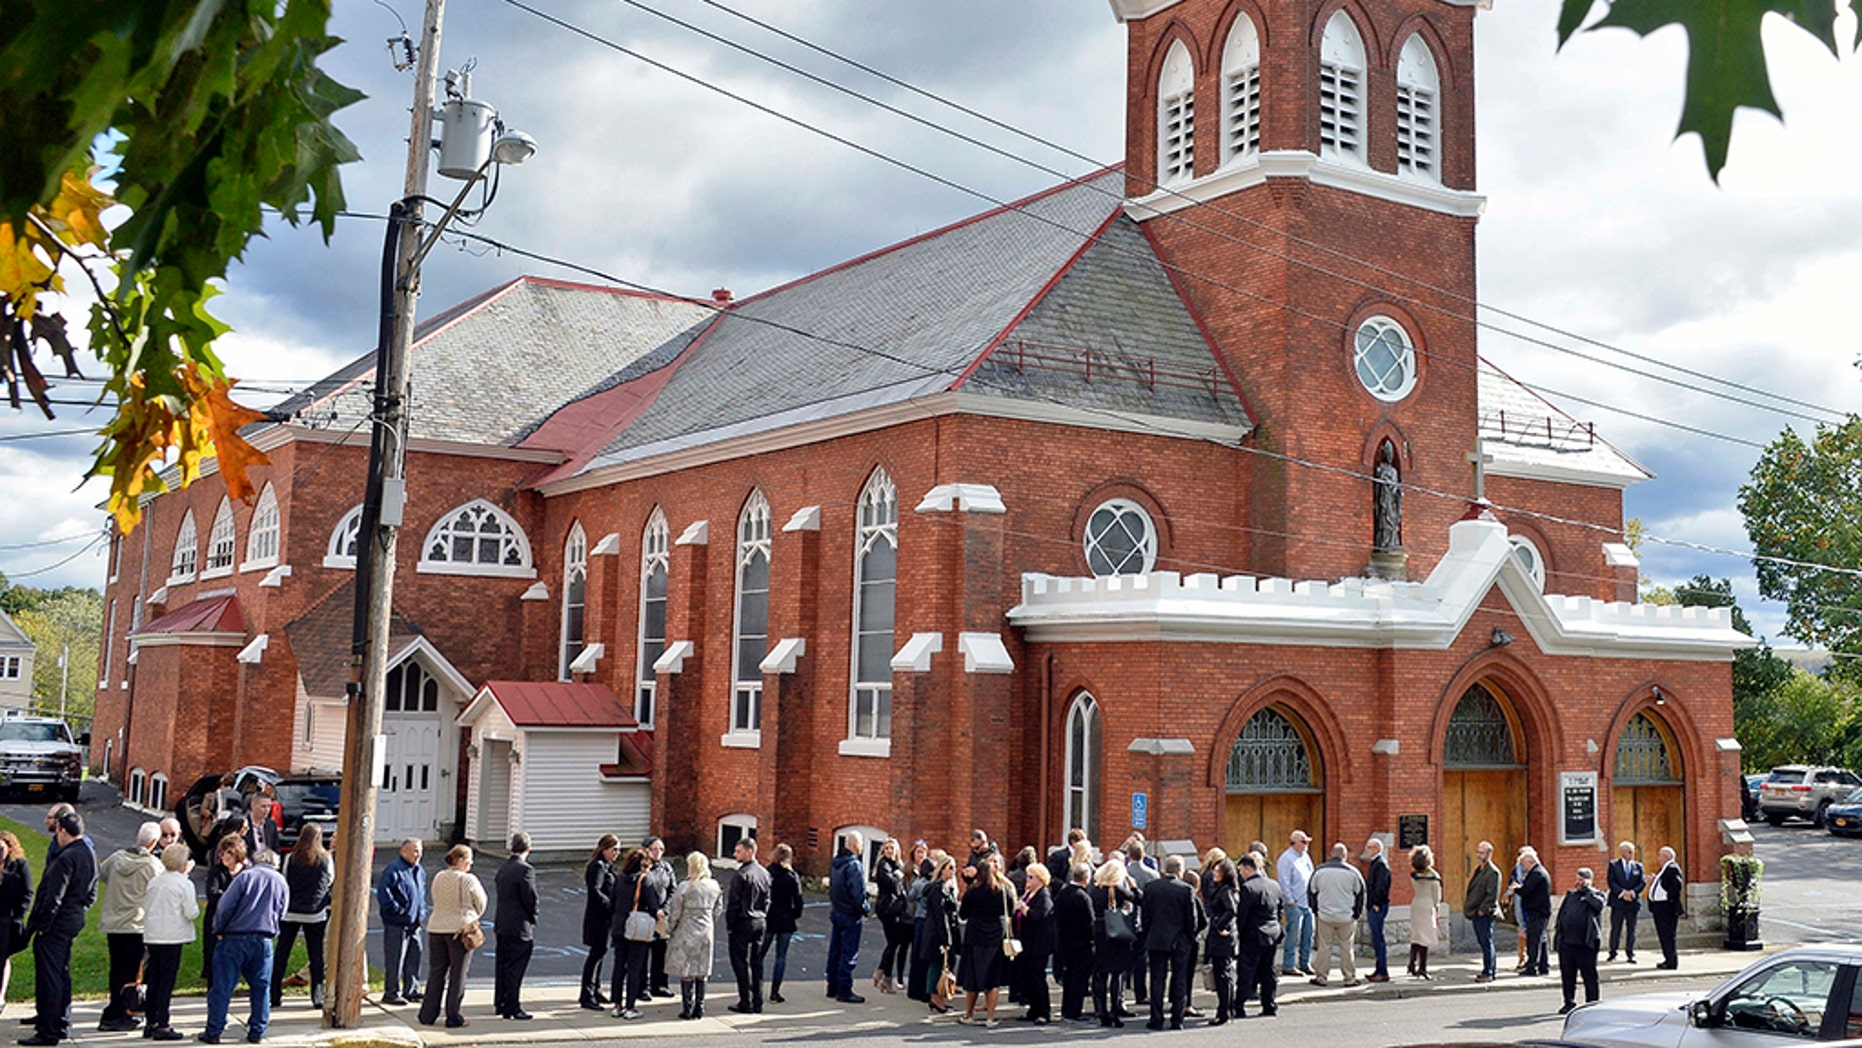 """Mourners enter St. Stanislaus Roman Catholic Church to attend calling hours for Schoharie limo crash victims; Abigail (King) Jackson, Adam """"Action"""" Jackson, Mary (King) Dyson, Robert J. Dyson, Allison A. King, Amy (King) Steenburg, Axel J. Steenburg and Richard Steenburg Jr., on Friday Oct. 12, 2018, in Amsterdam, N.Y. (John Carl D'Annibale/The Albany Times Union via AP)"""